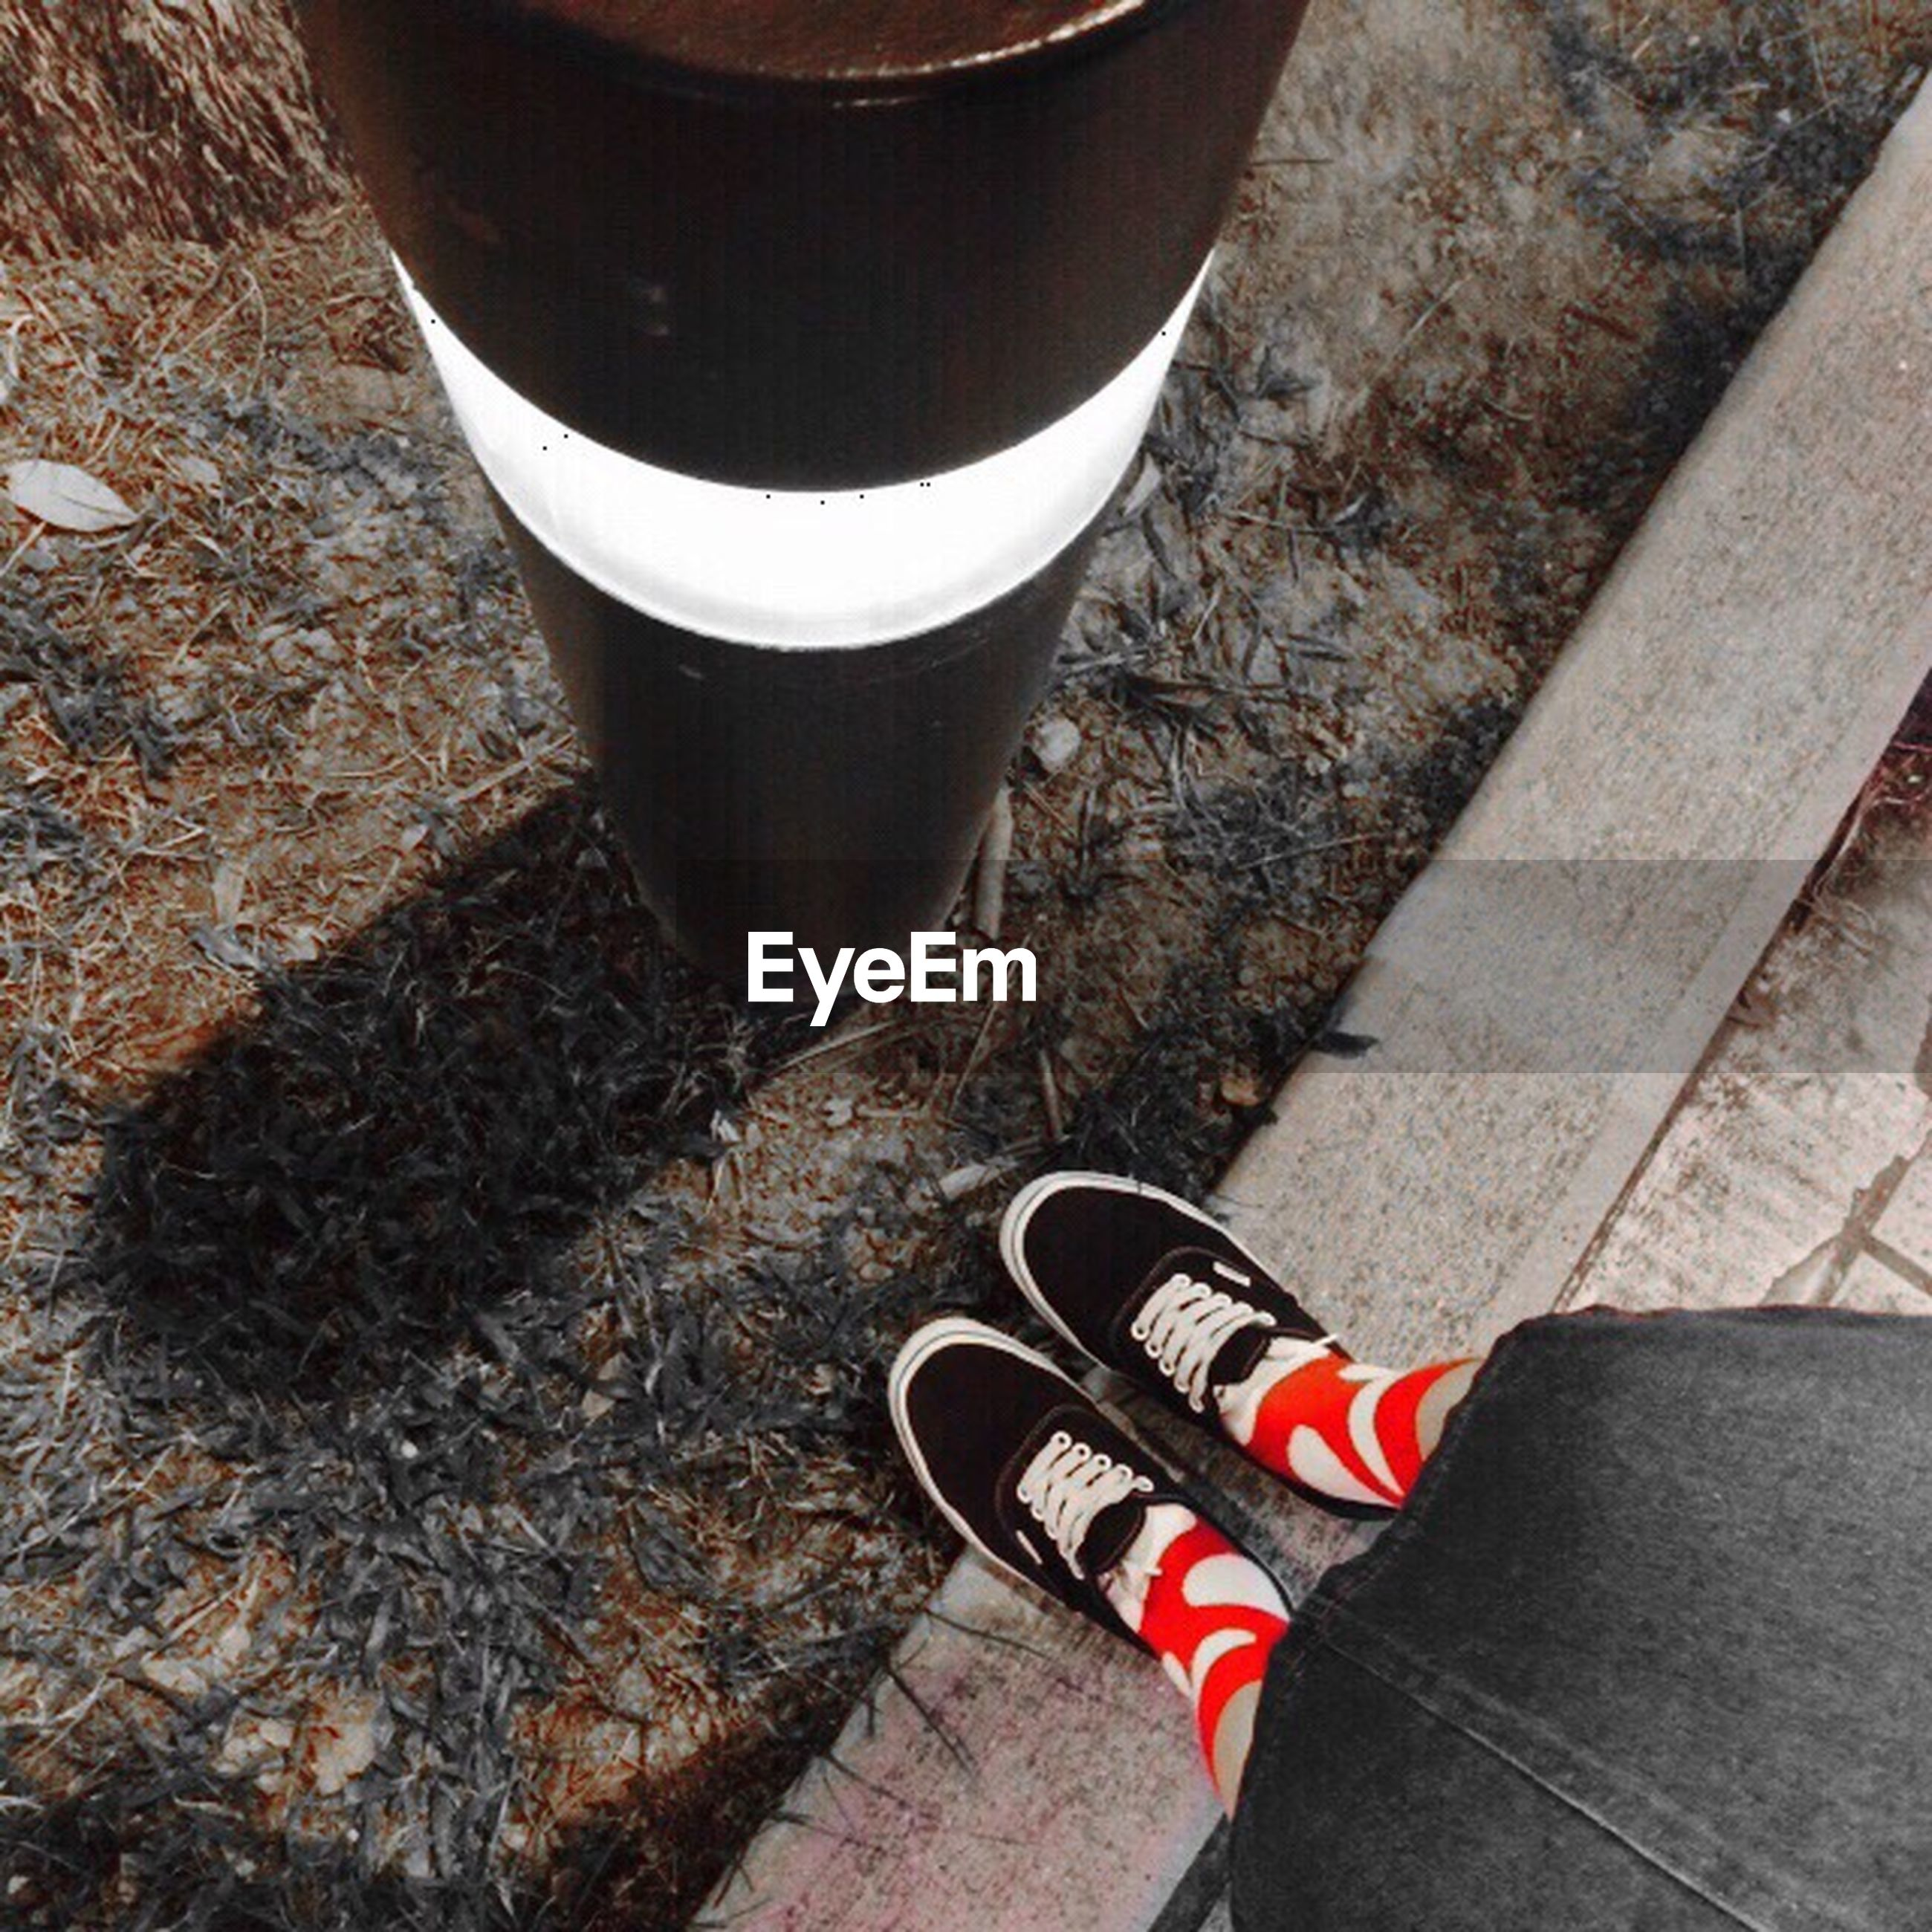 high angle view, shoe, still life, food and drink, drink, close-up, coffee cup, directly above, outdoors, red, day, low section, street, footwear, sunlight, elevated view, one person, table, coffee - drink